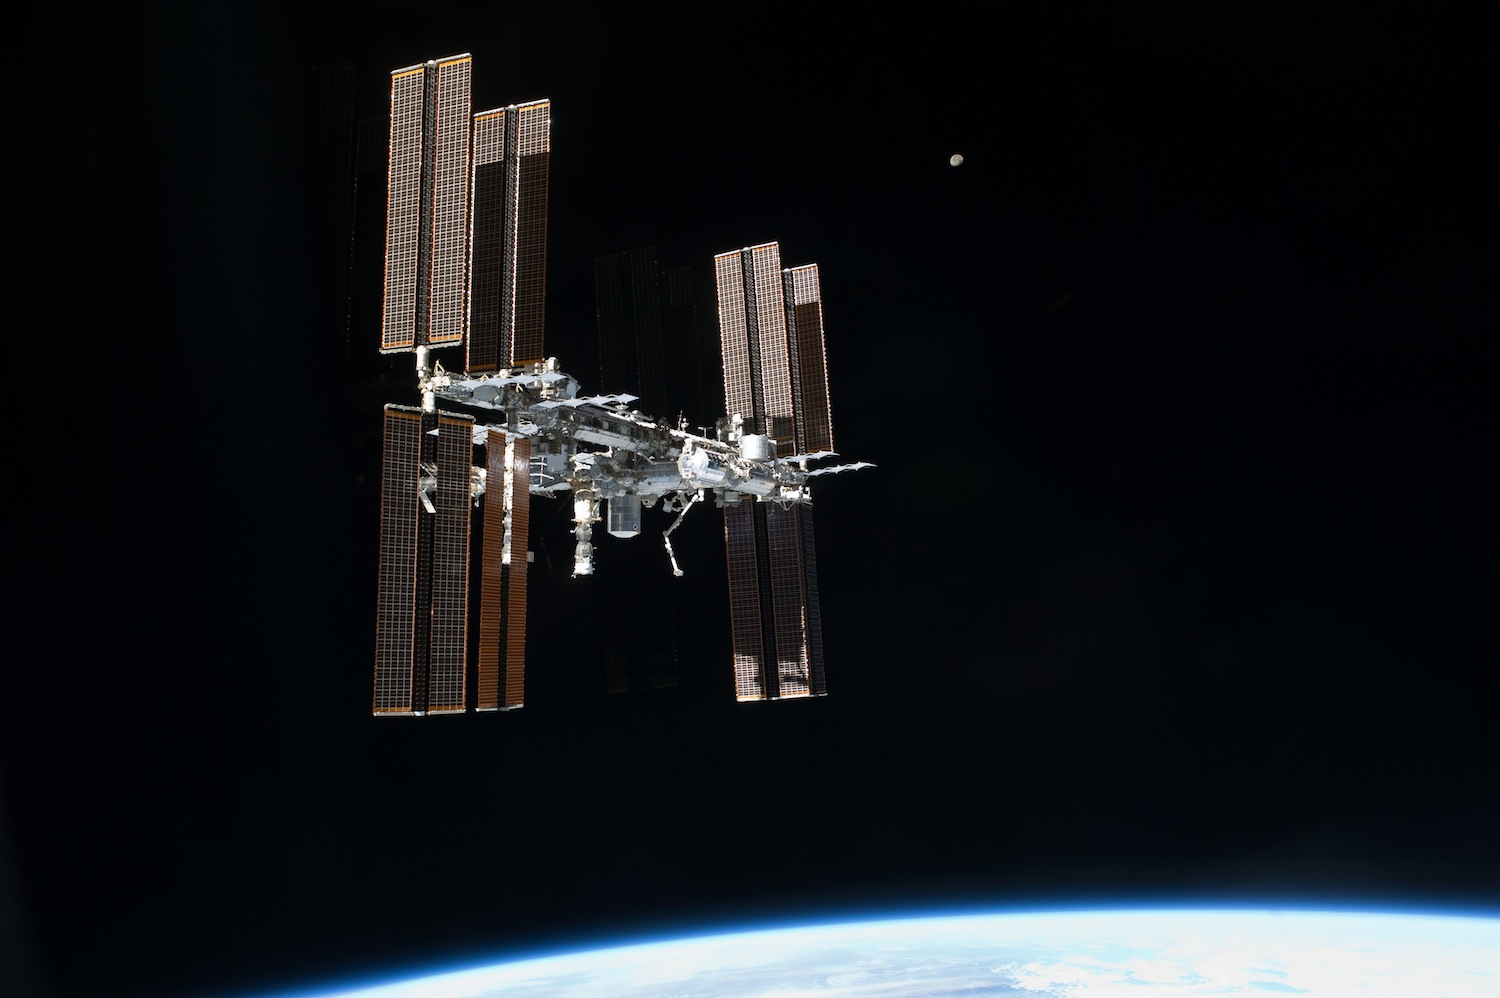 That's no moon... oh, wait. Yes it is. Nothing amateur related. Just a gratuitous image of the International Space Station in TIE Fighter configuration. Source:  Nasa